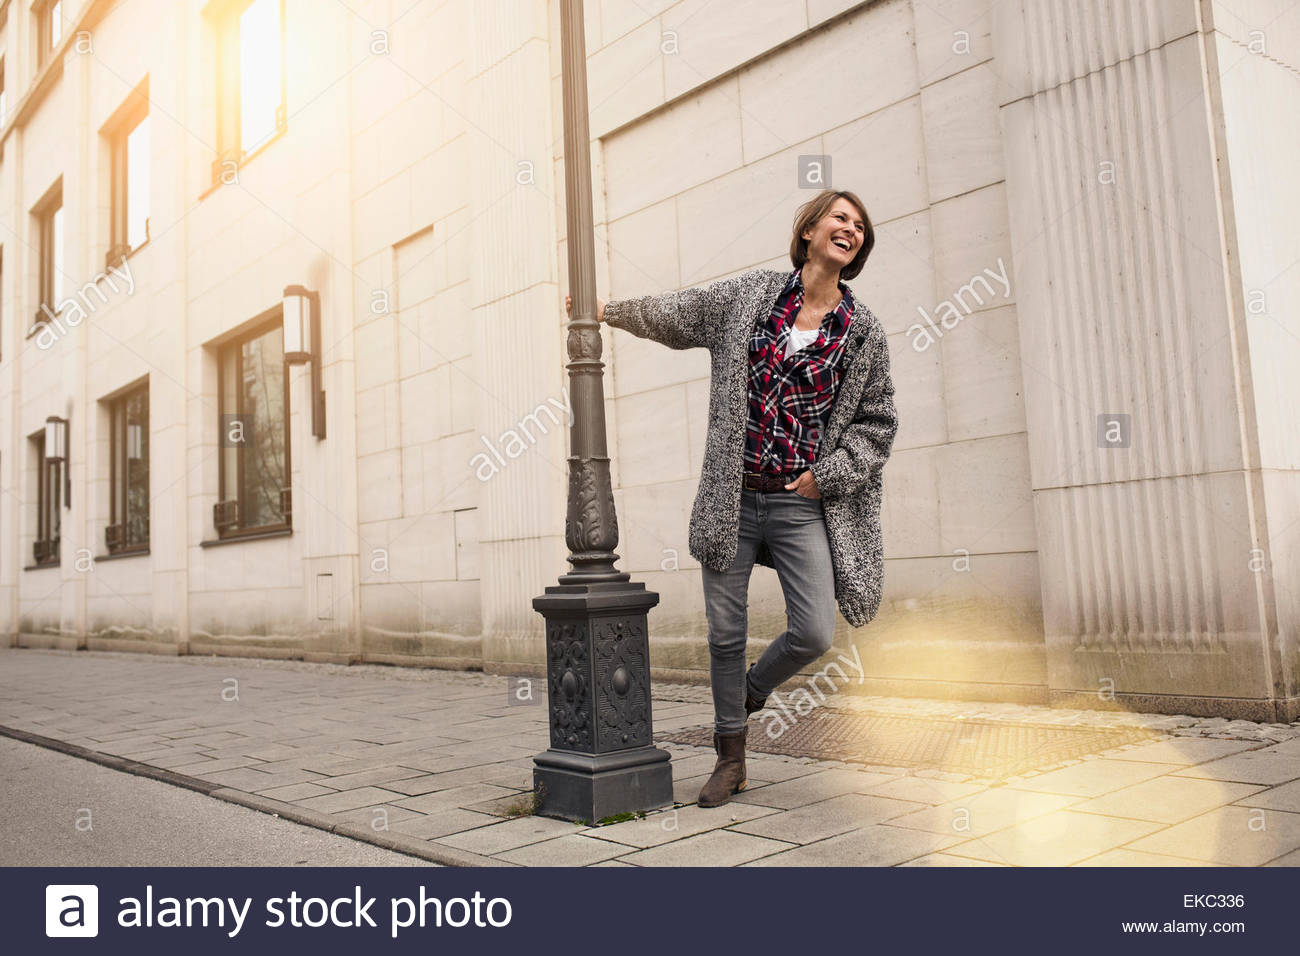 Woman enjoying city street Photo Stock